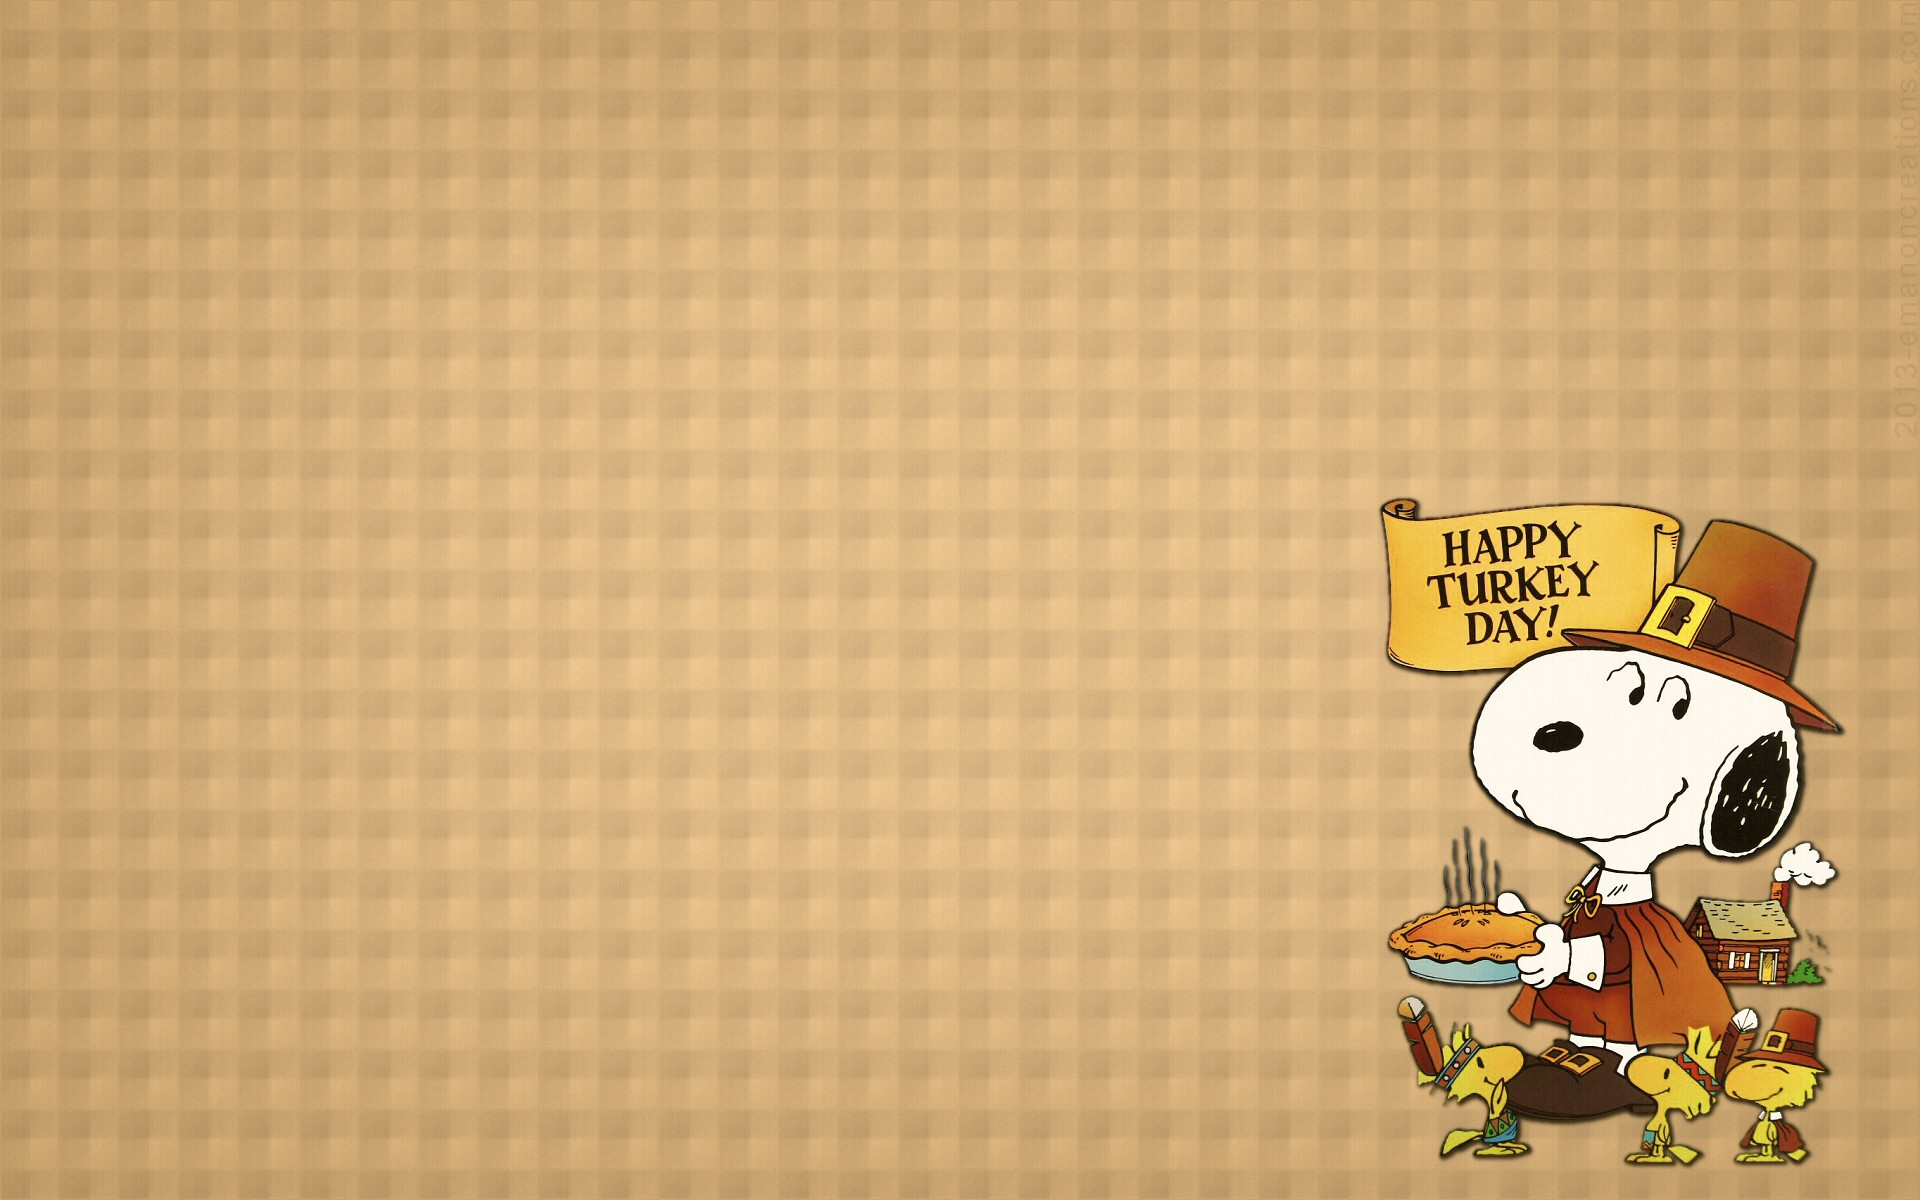 Thanksgiving wallpapers 67 images 1920x1080 thanksgiving wallpapers 19201080 voltagebd Gallery